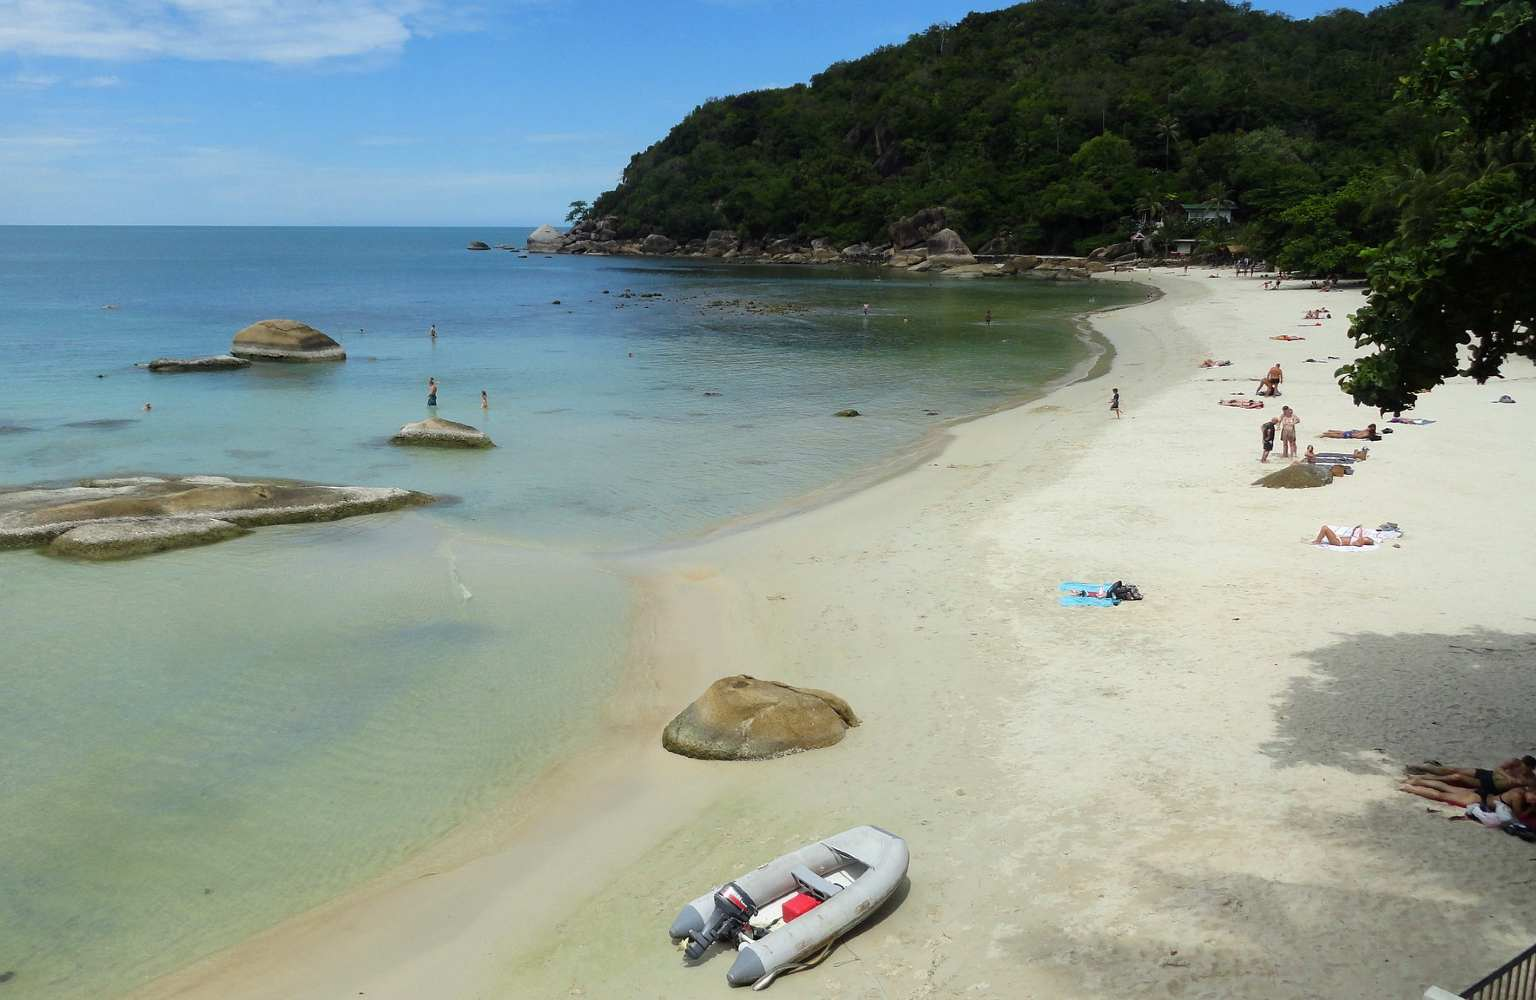 Rubber boat and and beautiful beach and sea of Crystal Bay on Koh Samui